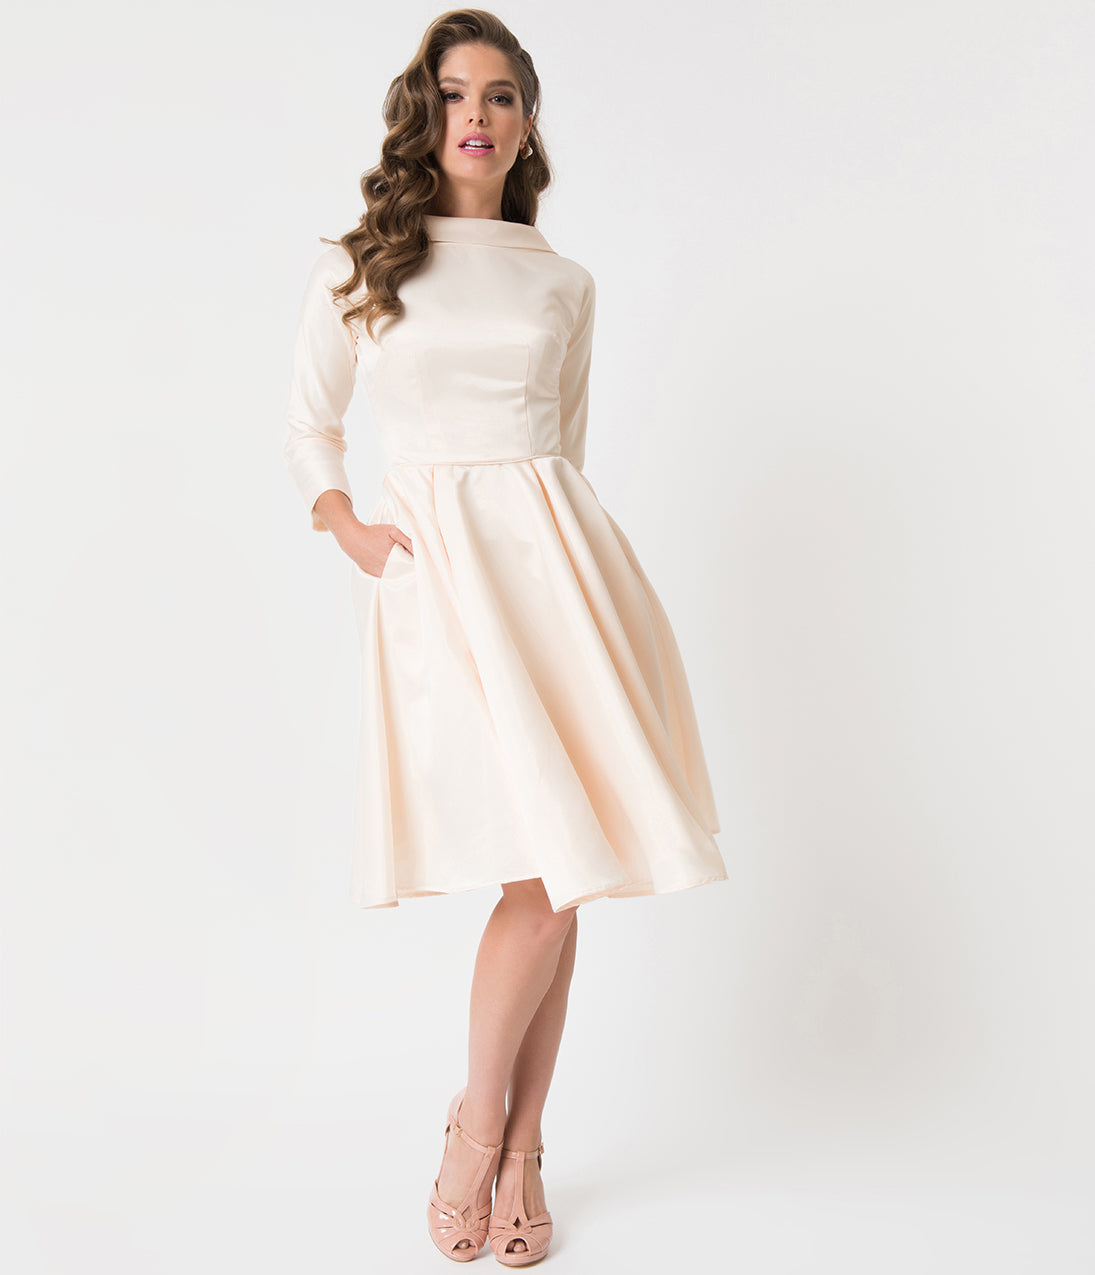 Unique Vintage 1950s Style Cream Satin Sleeved Lana Bridal Dress: Simple Fall Themed Wedding Dresses At Websimilar.org